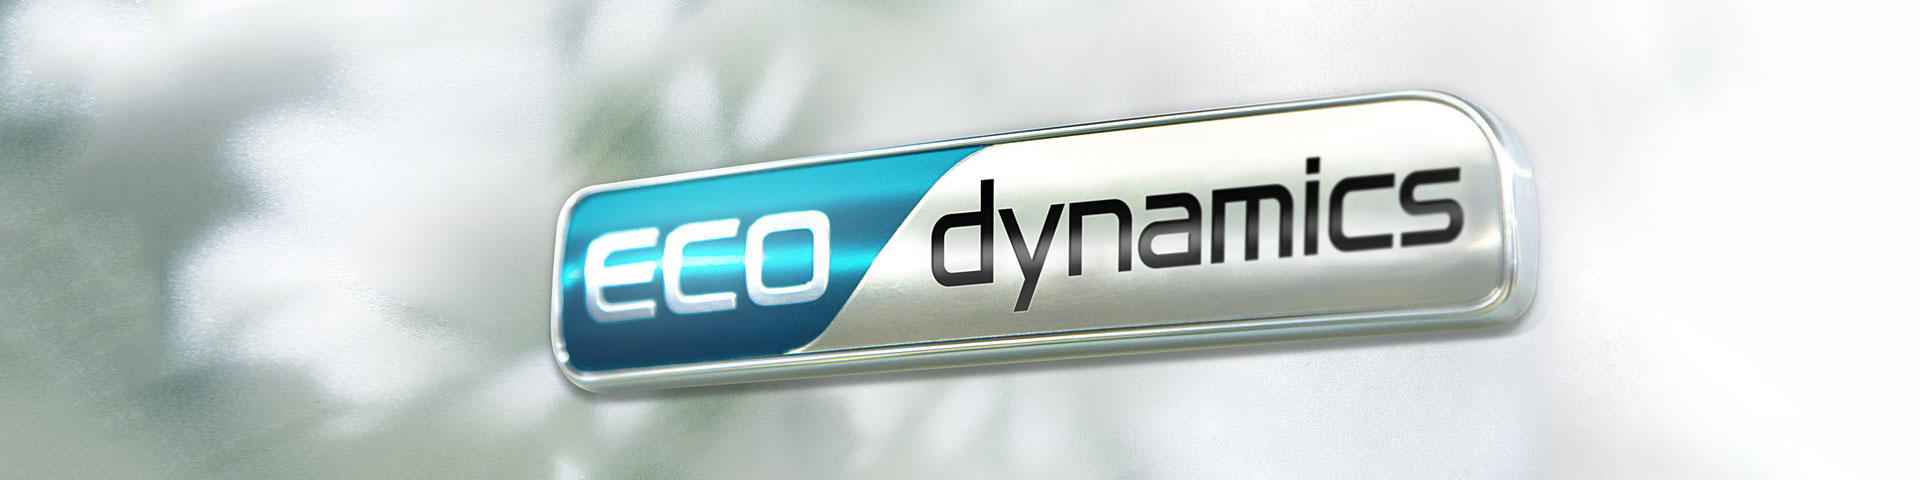 Kia Motors Europe ECO dynamics image with car badge